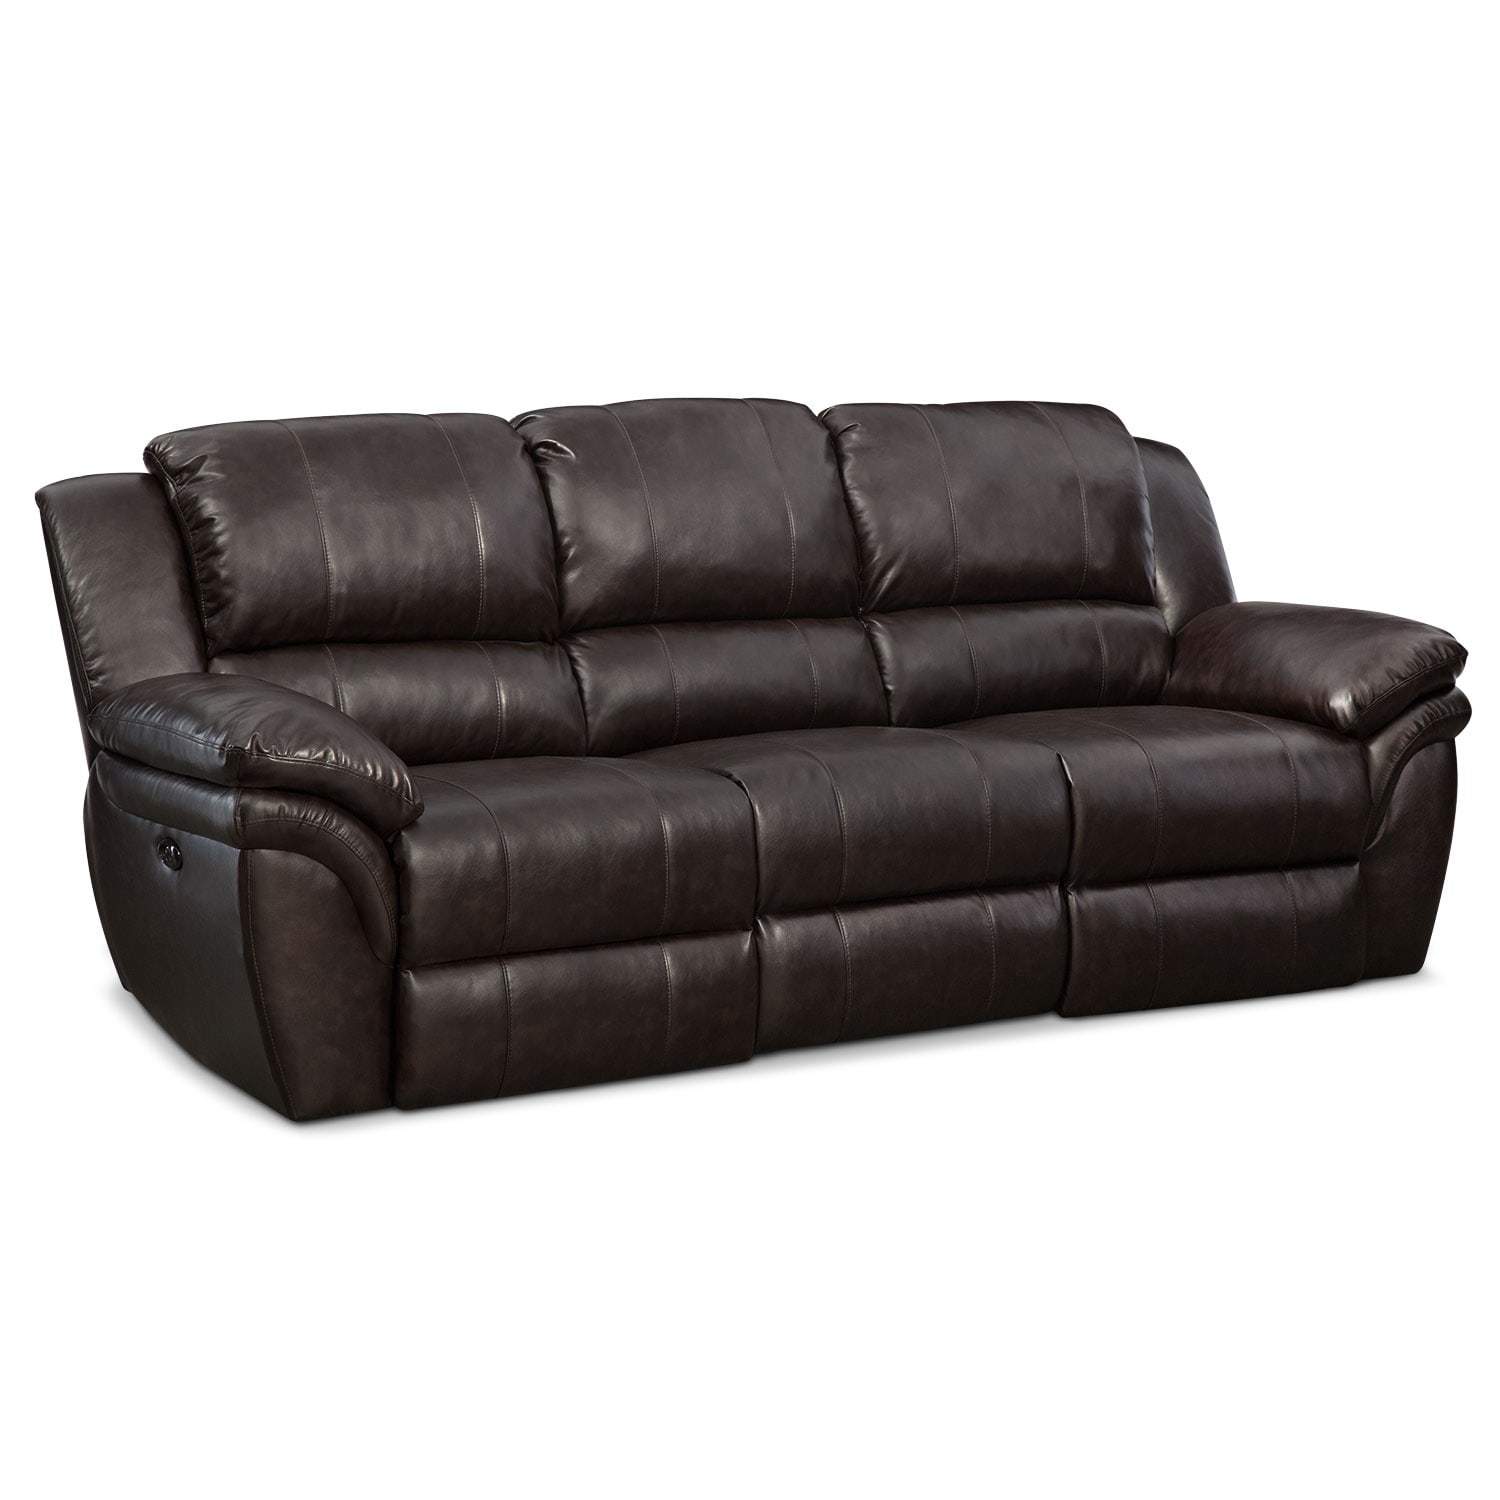 Living Room Furniture - Omni Brown Power Reclining Sofa